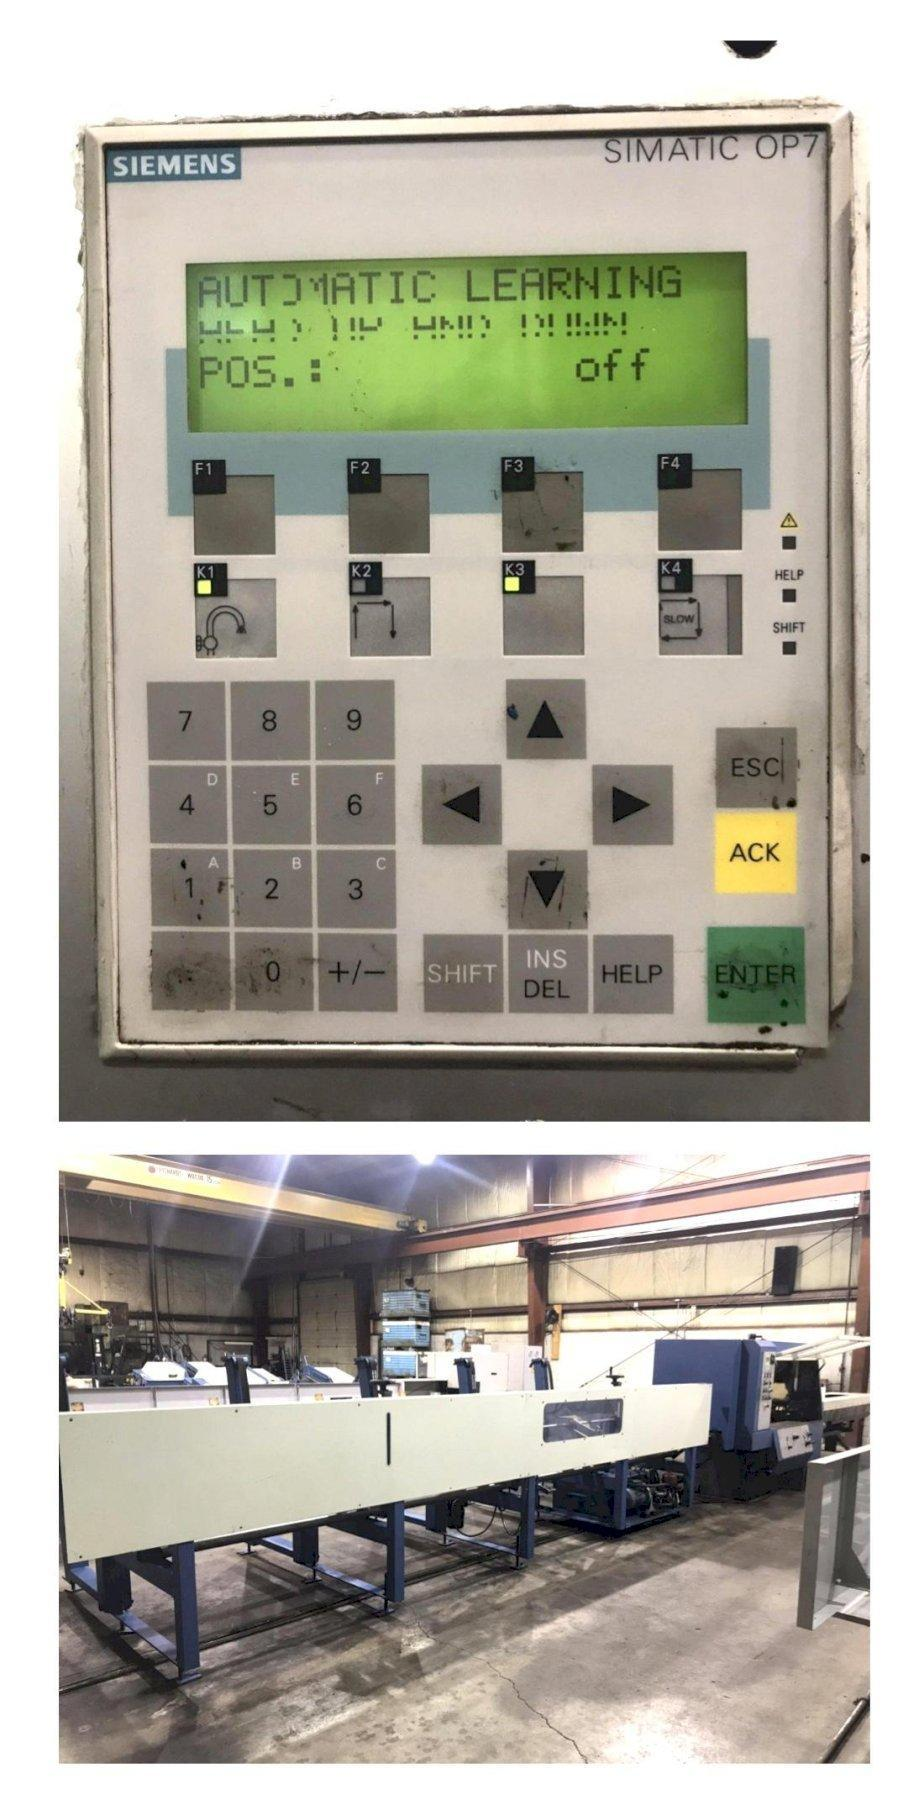 USED SIMEC MODEL CICLOMEC 122 CNC AUTOMATIC COLD SAW WITH 20' LOADING RACK, Stk# 00035 Year 2001